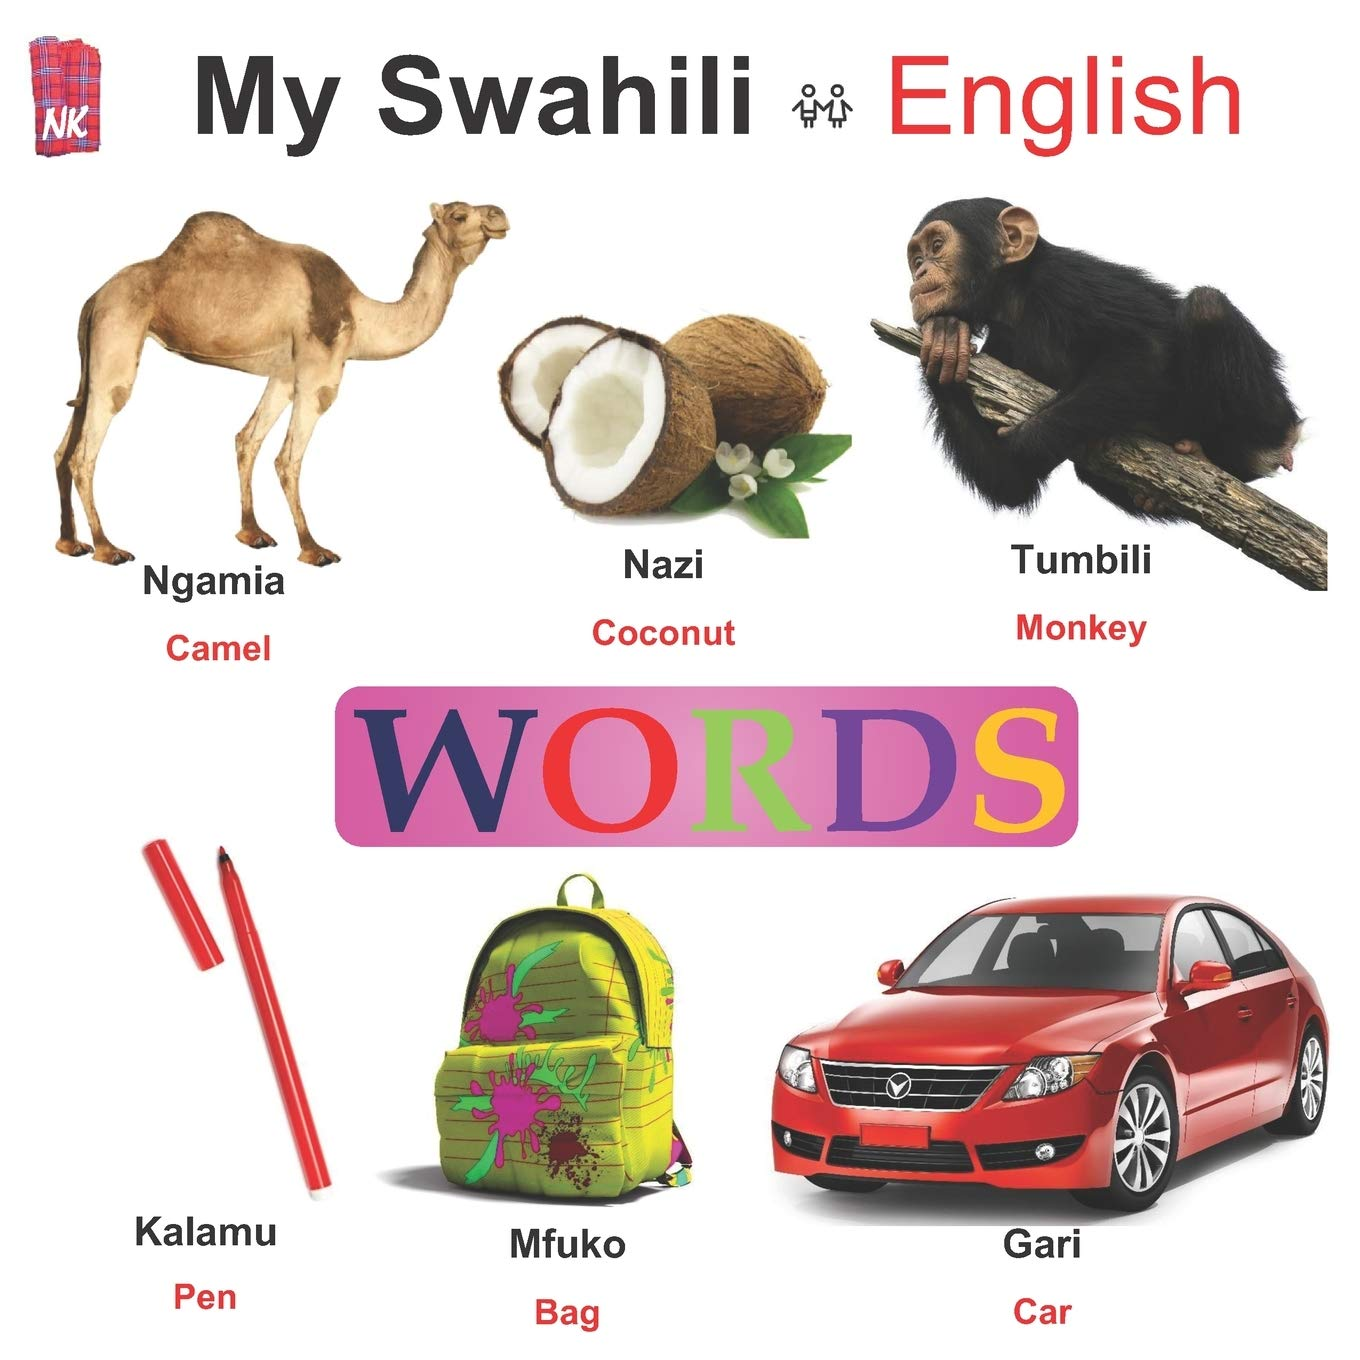 My Swahili - English WORDS